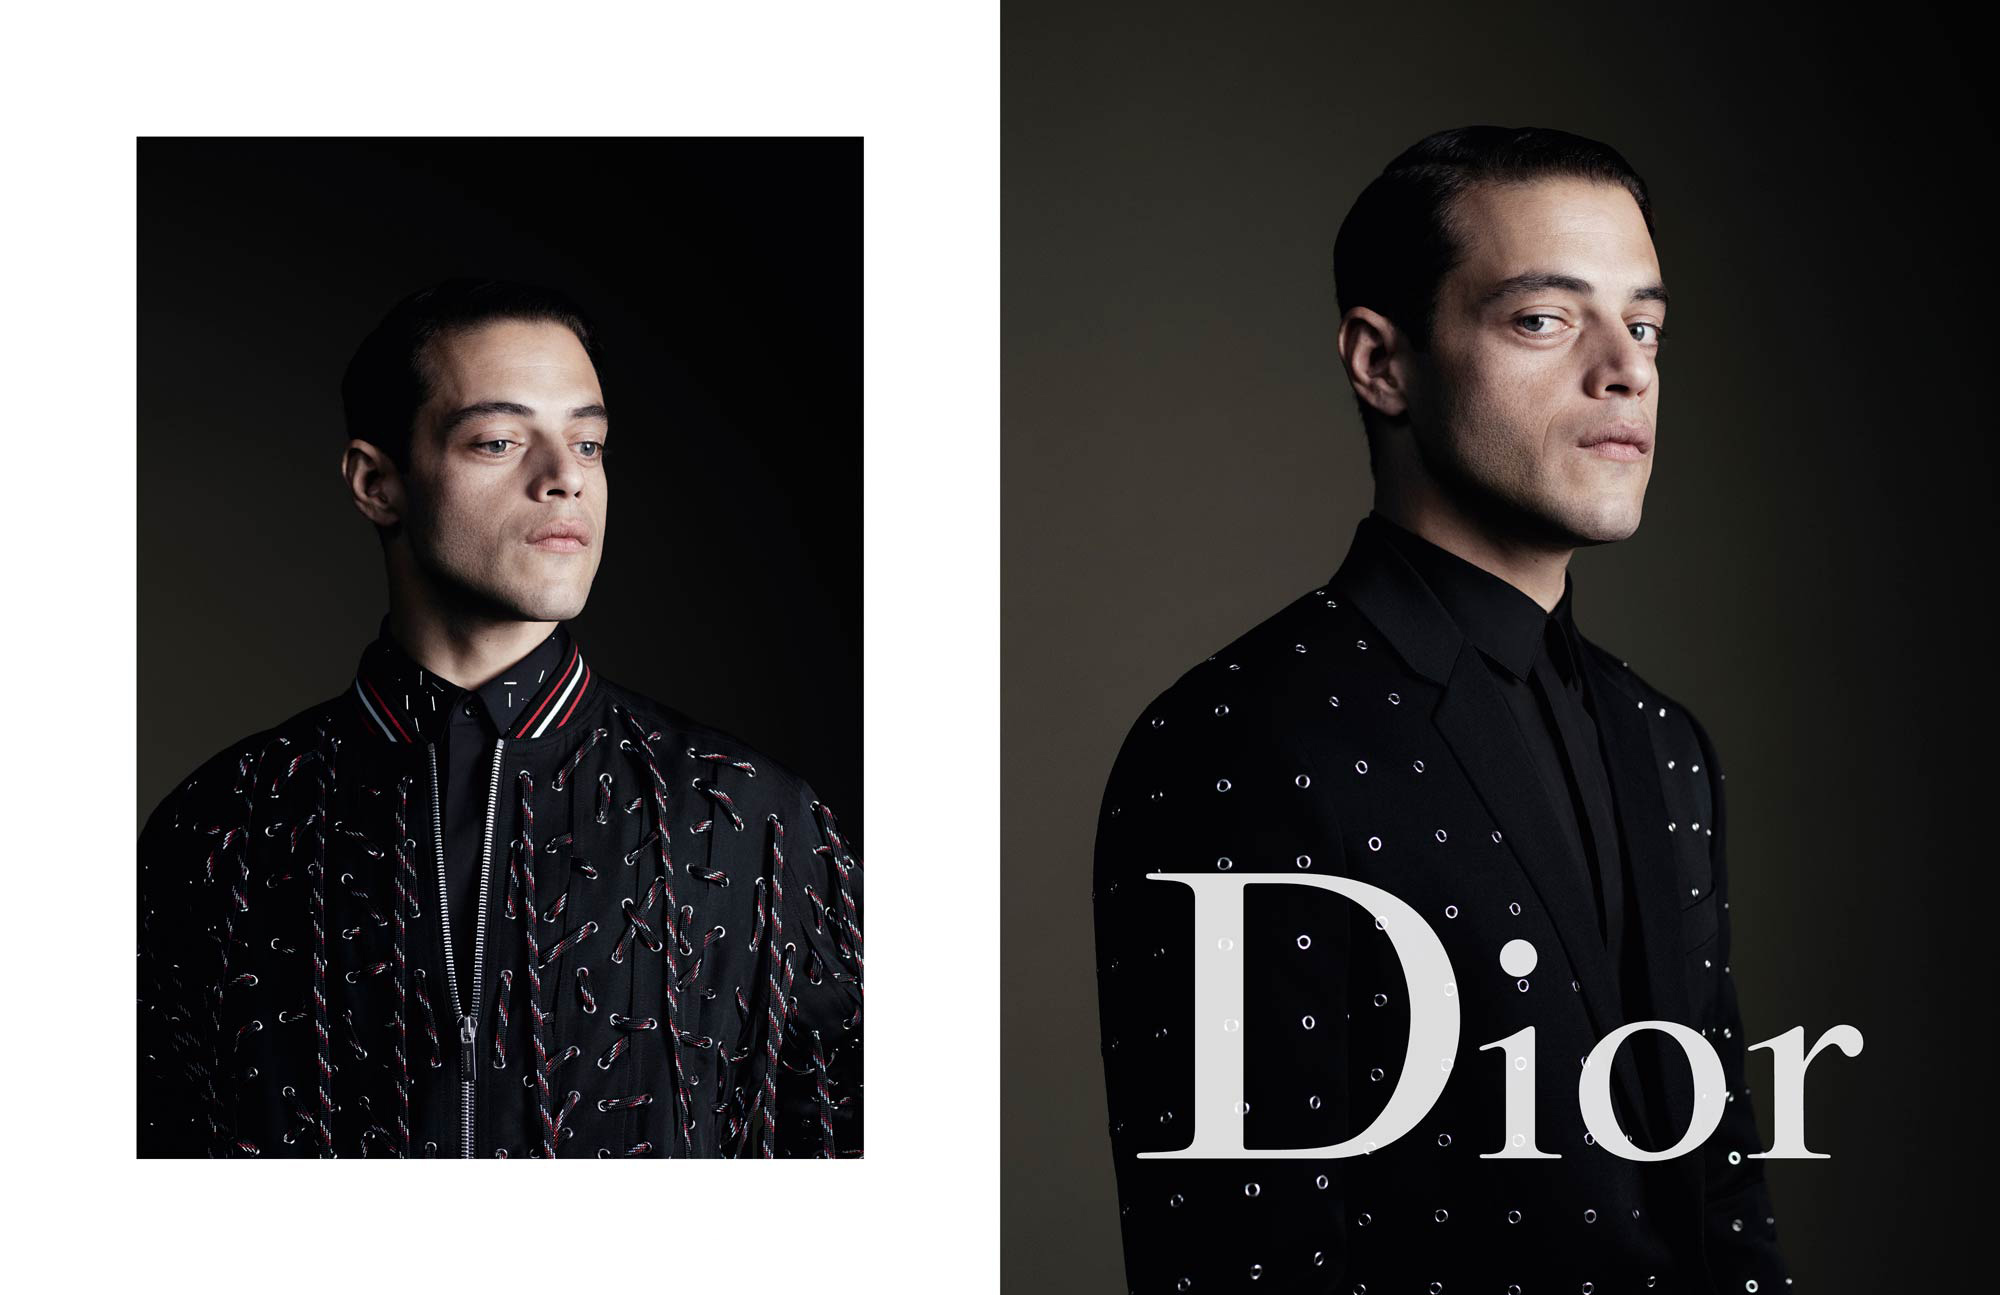 dior-homme-summer-17-ad-campaign-feat-asap-rocky-boy-george-3